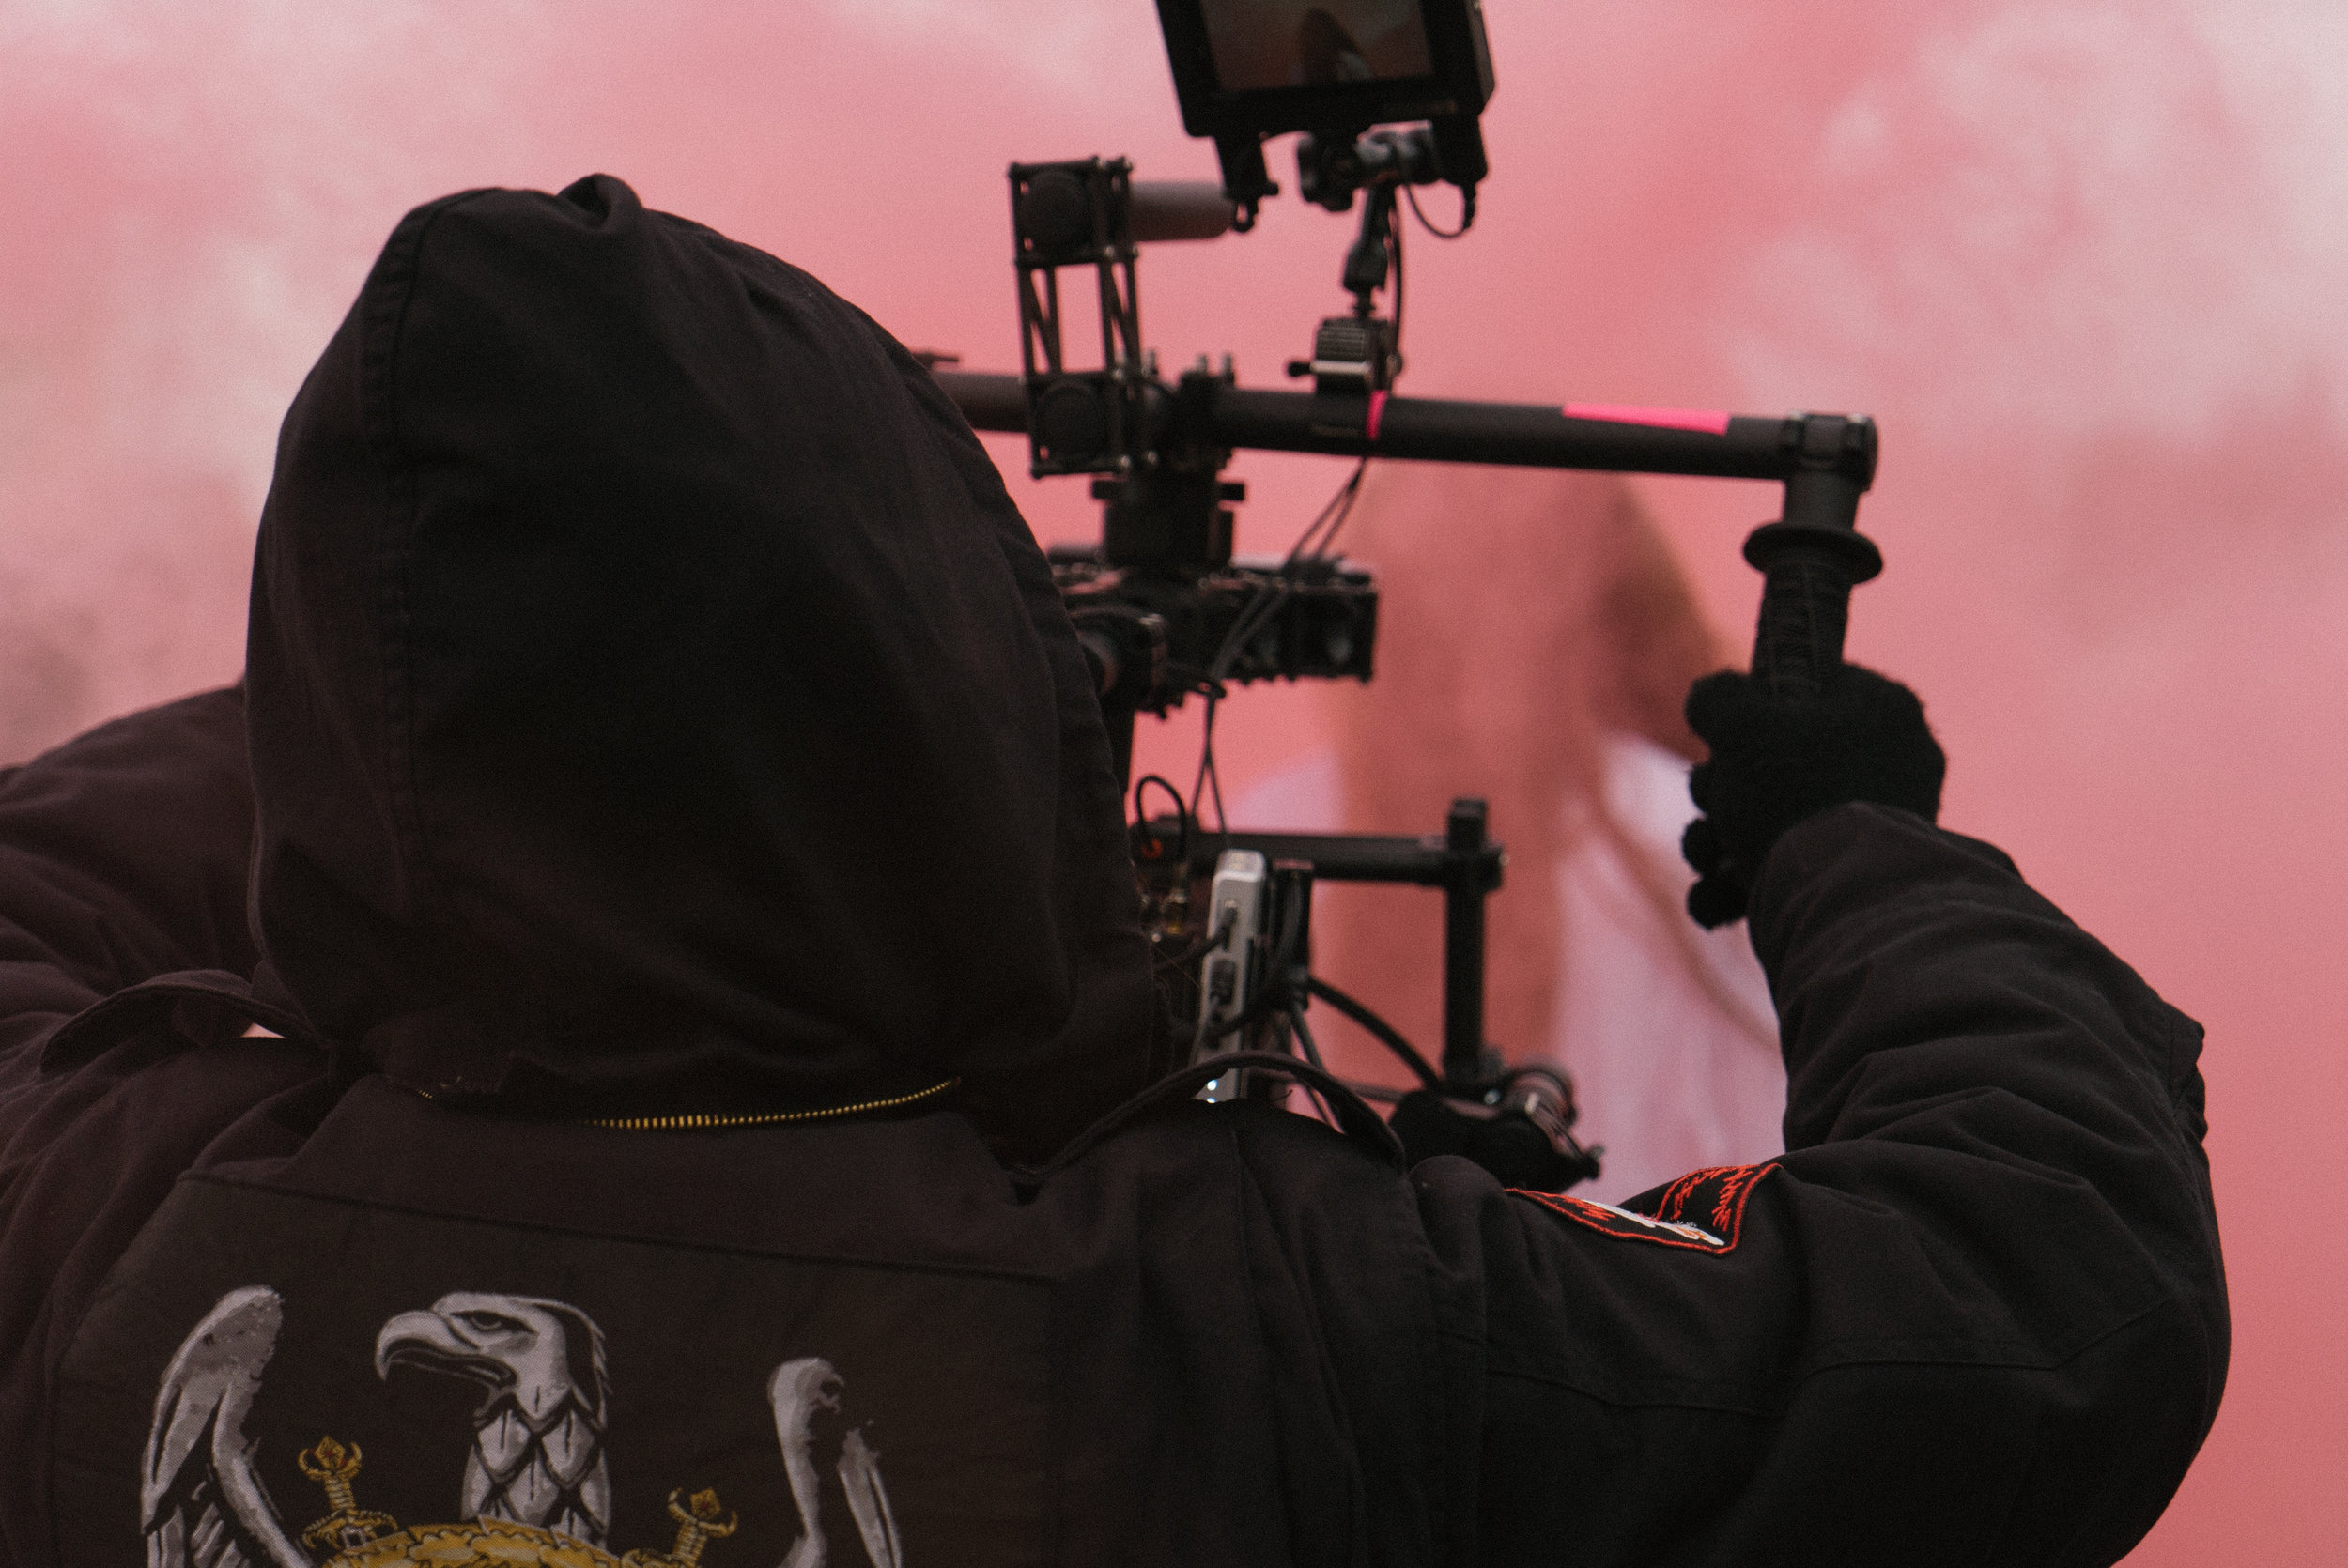 Smoke bombs add an awesome effect to to the shots with director, Lorenzo taking the handles